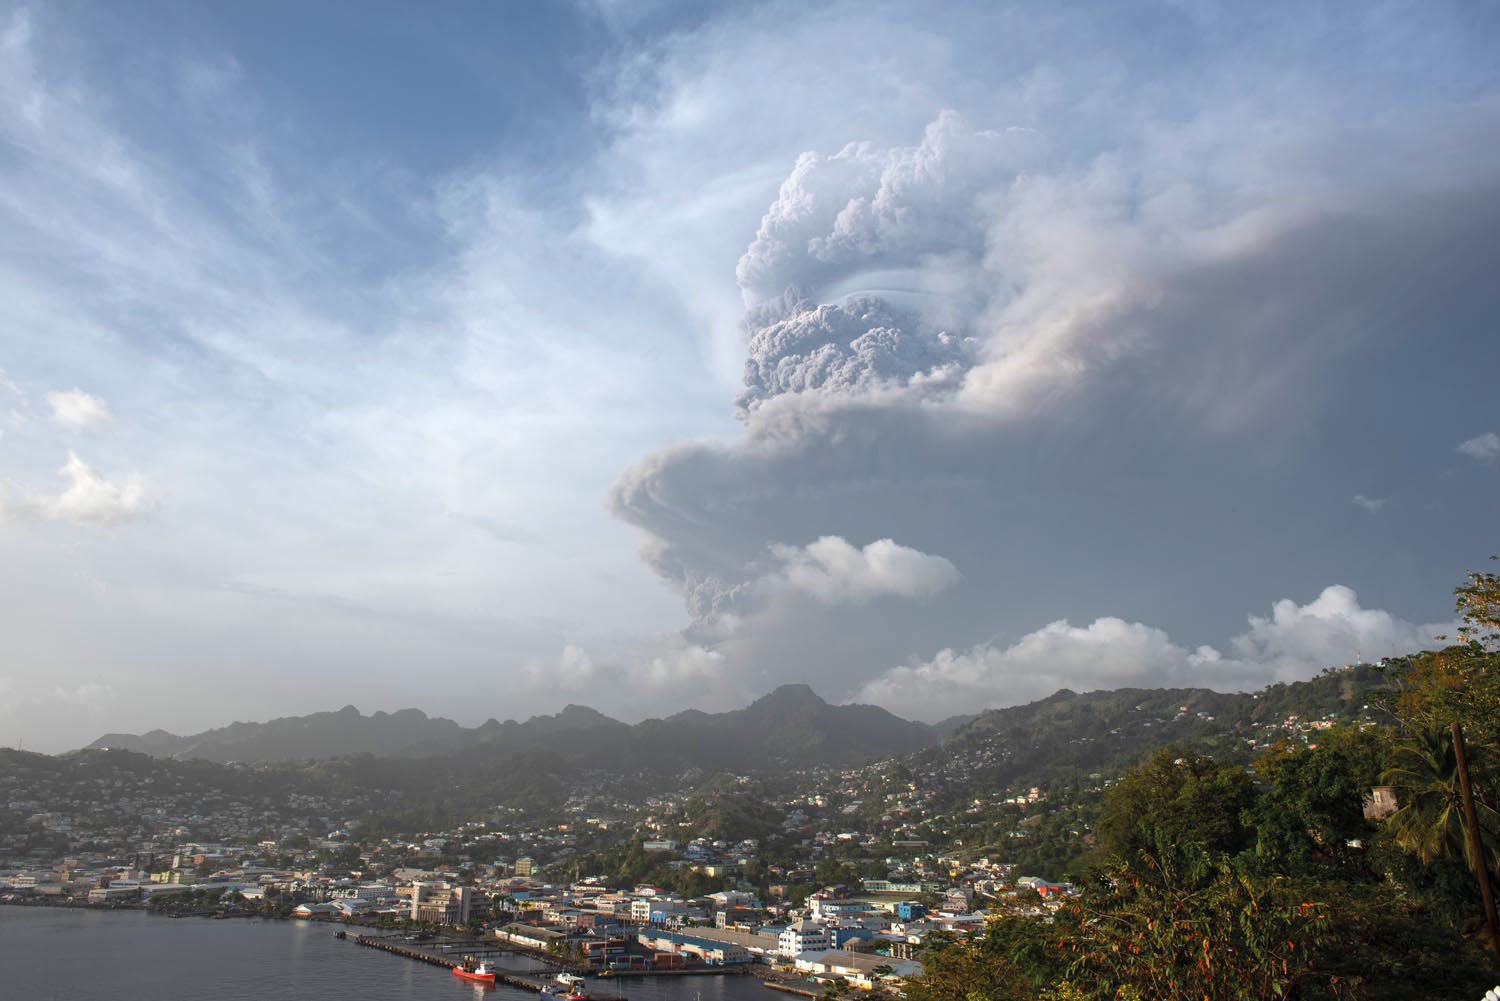 Ash cloud visible over Kingstown. Photo by Stephan Hornsey